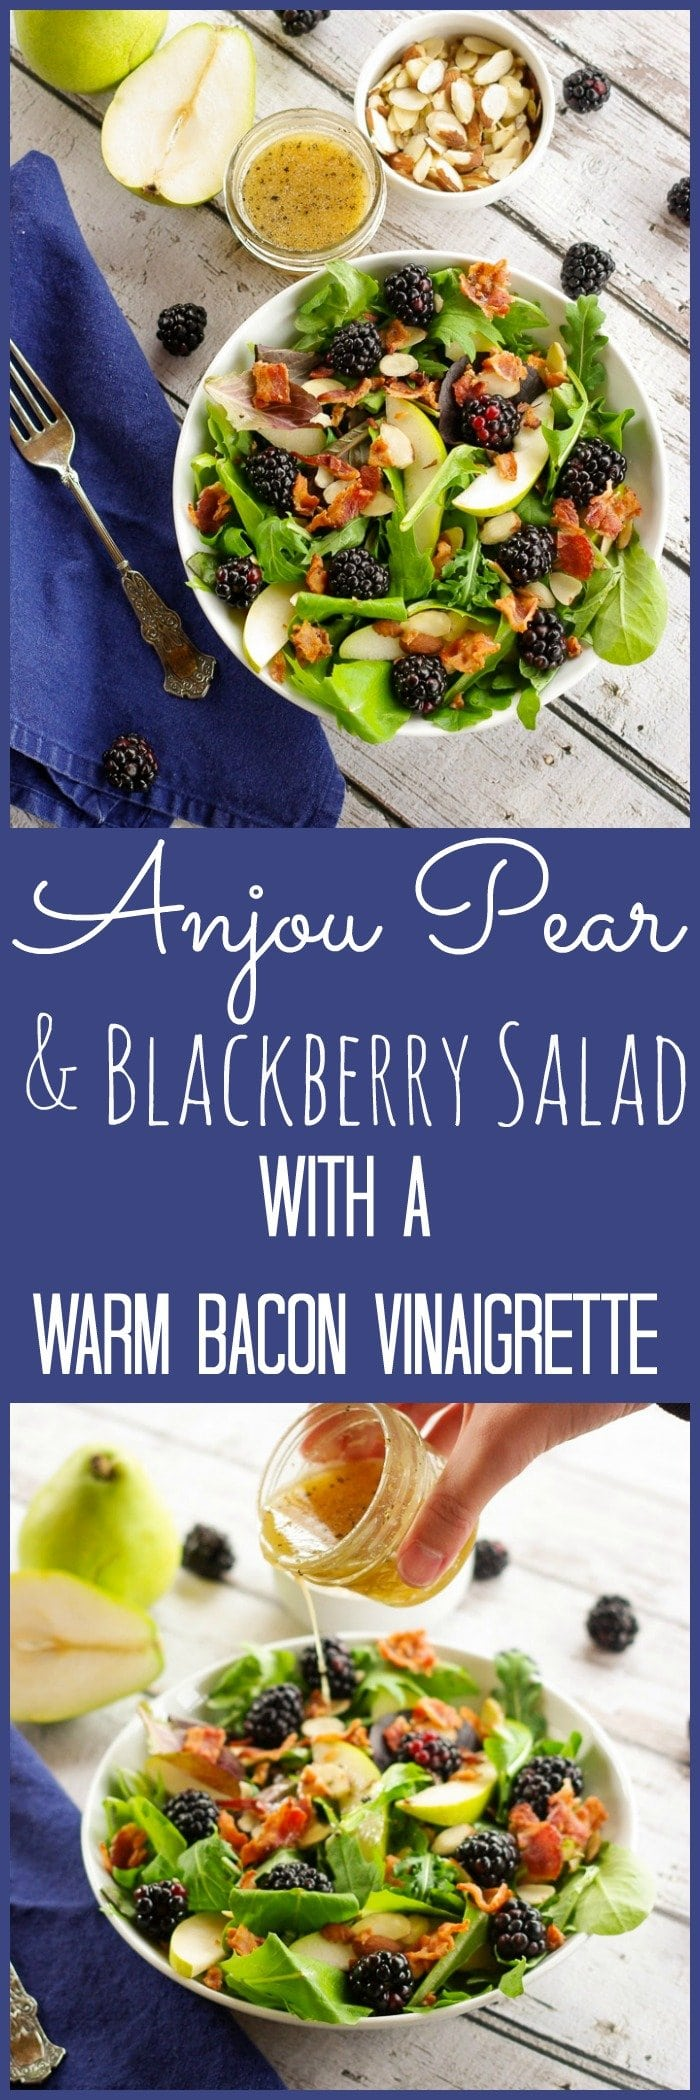 Anjou Pear & Blackberry Salad with a Warm Bacon Vinaigrette | www.homeandplate.com | My Anjou Pear & Blackberry Salad with a Warm Bacon Vinaigrette is the perfect way to start any holiday meal.